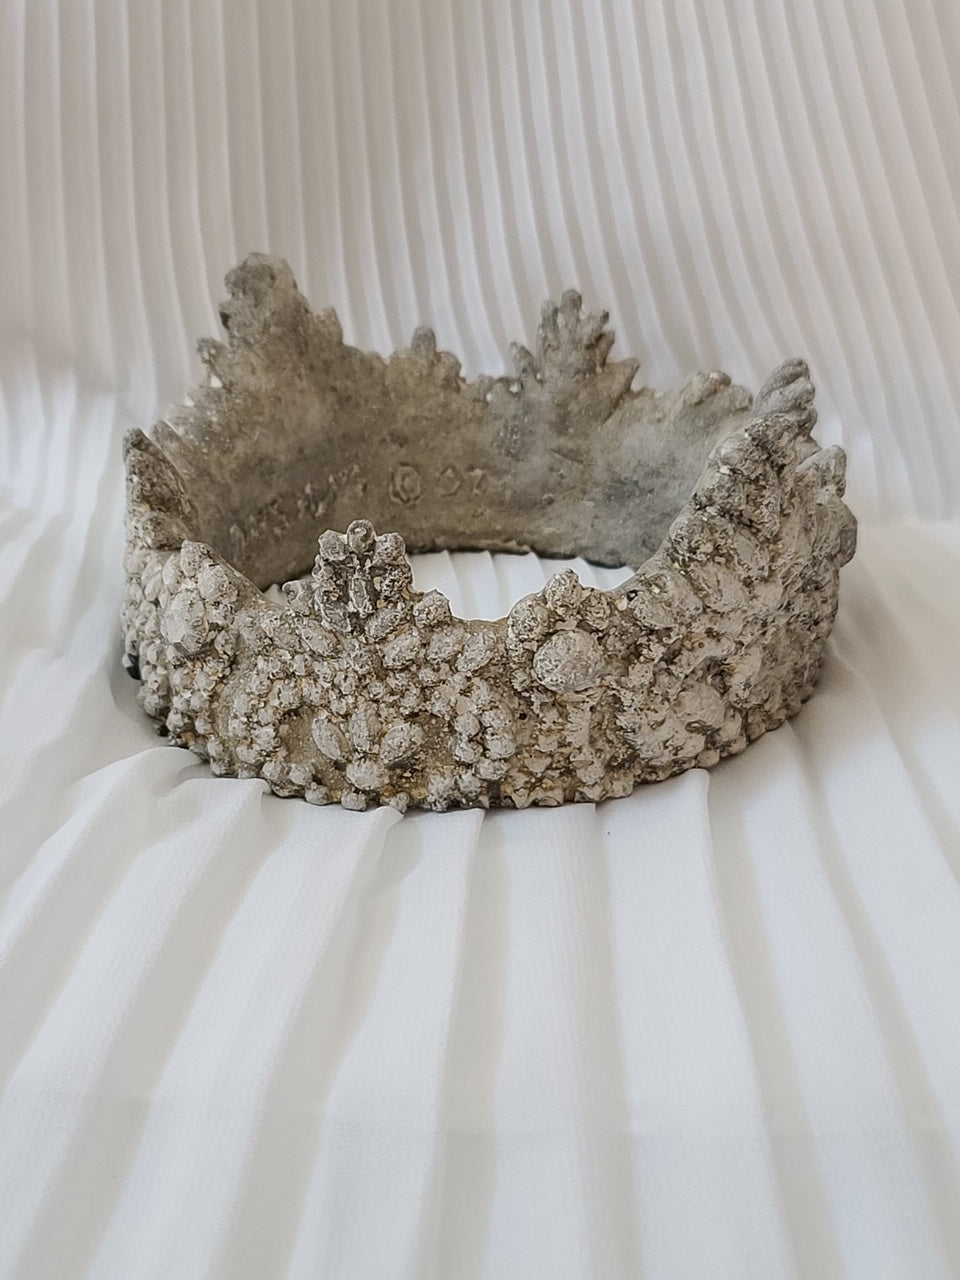 Large Decorative Cement Crown